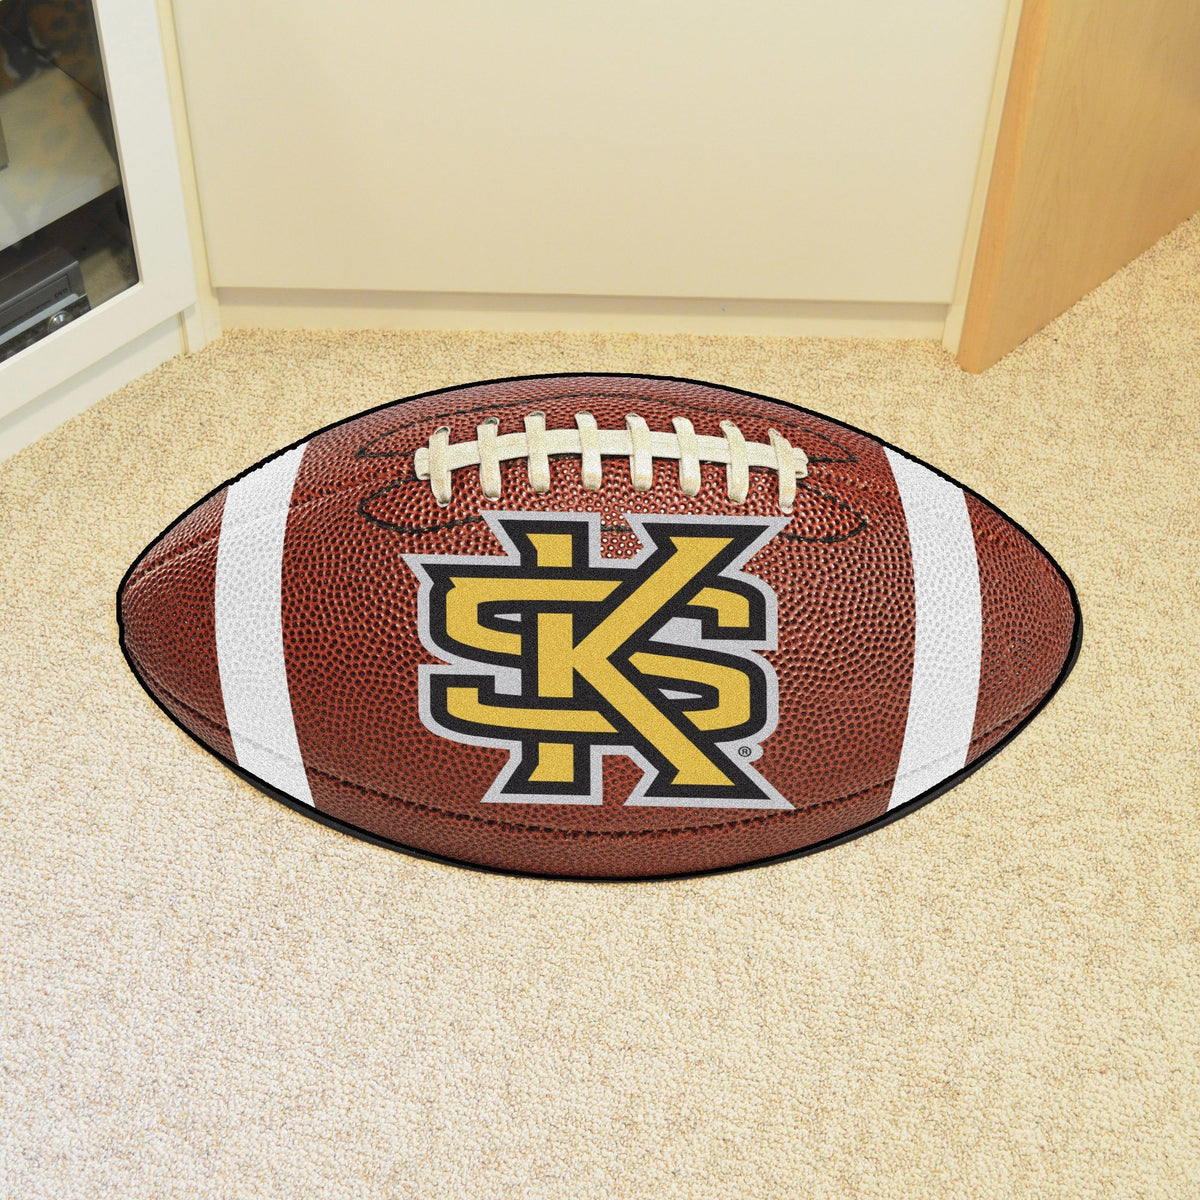 Collegiate - Football Mat: A - K Collegiate Mats, Rectangular Mats, Football Mat, Collegiate, Home Fan Mats Kennesaw State 2